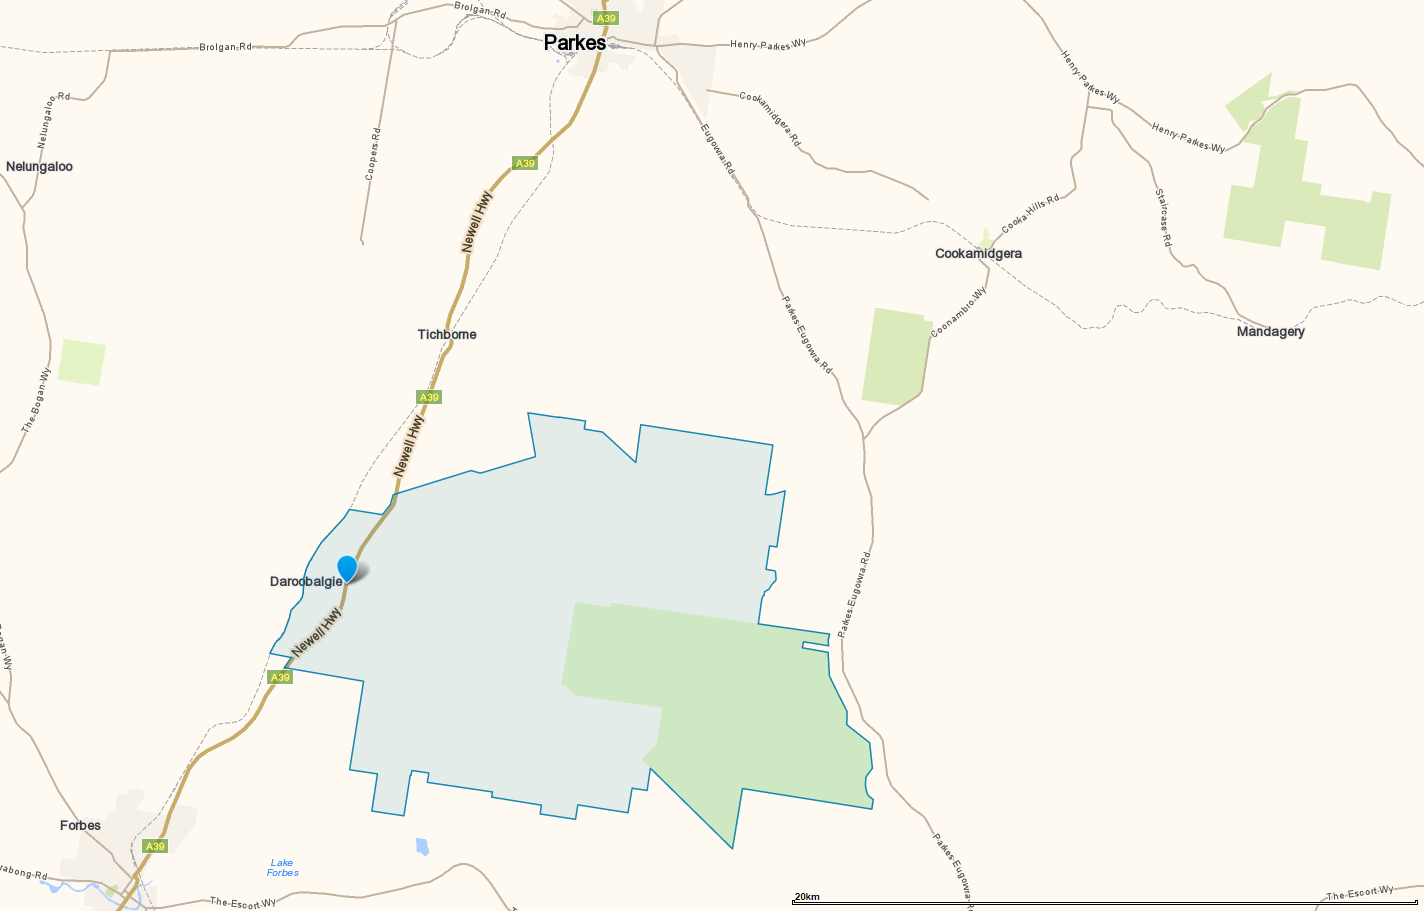 Map of Daroobalgie in relation to Forbes and Parkes. Source: Whereis.com